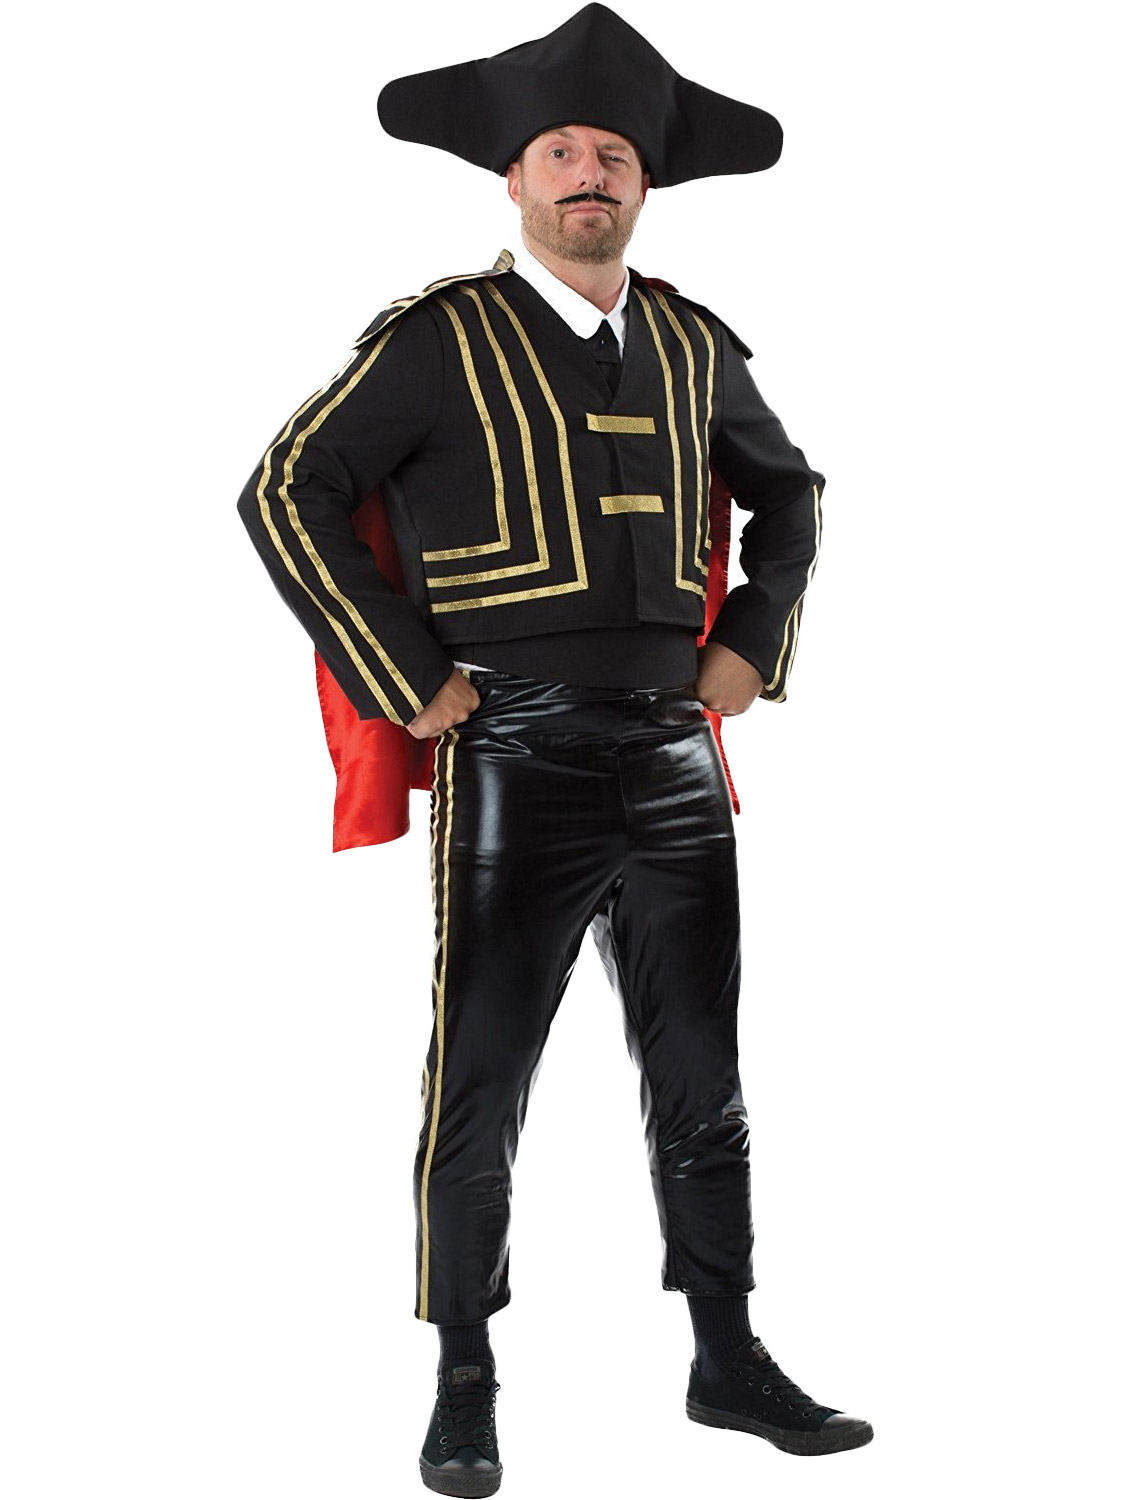 Details about Mens Spanish Matador Costume Adults Bull Fighter Fancy Dress  Stag Party Outfit c52e6a784134